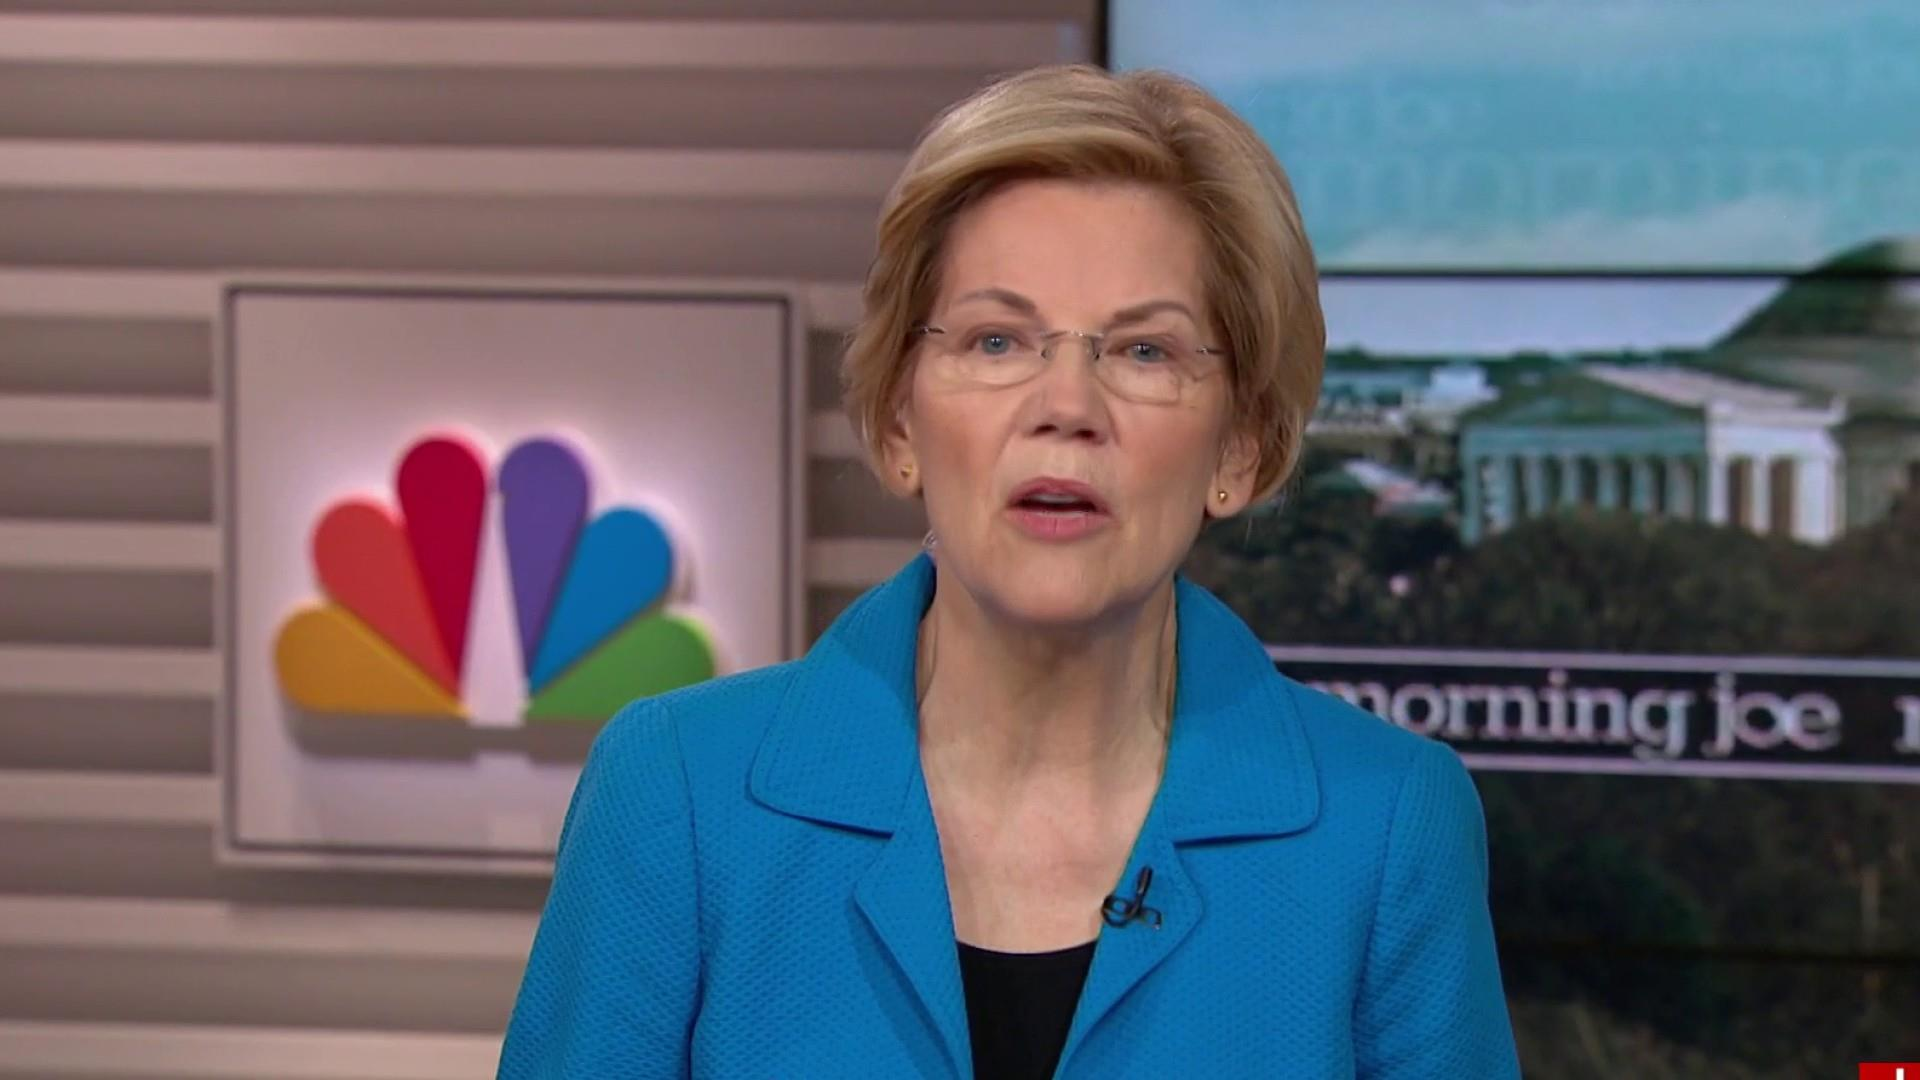 I'm not afraid of anyone, particularly Trump: Warren